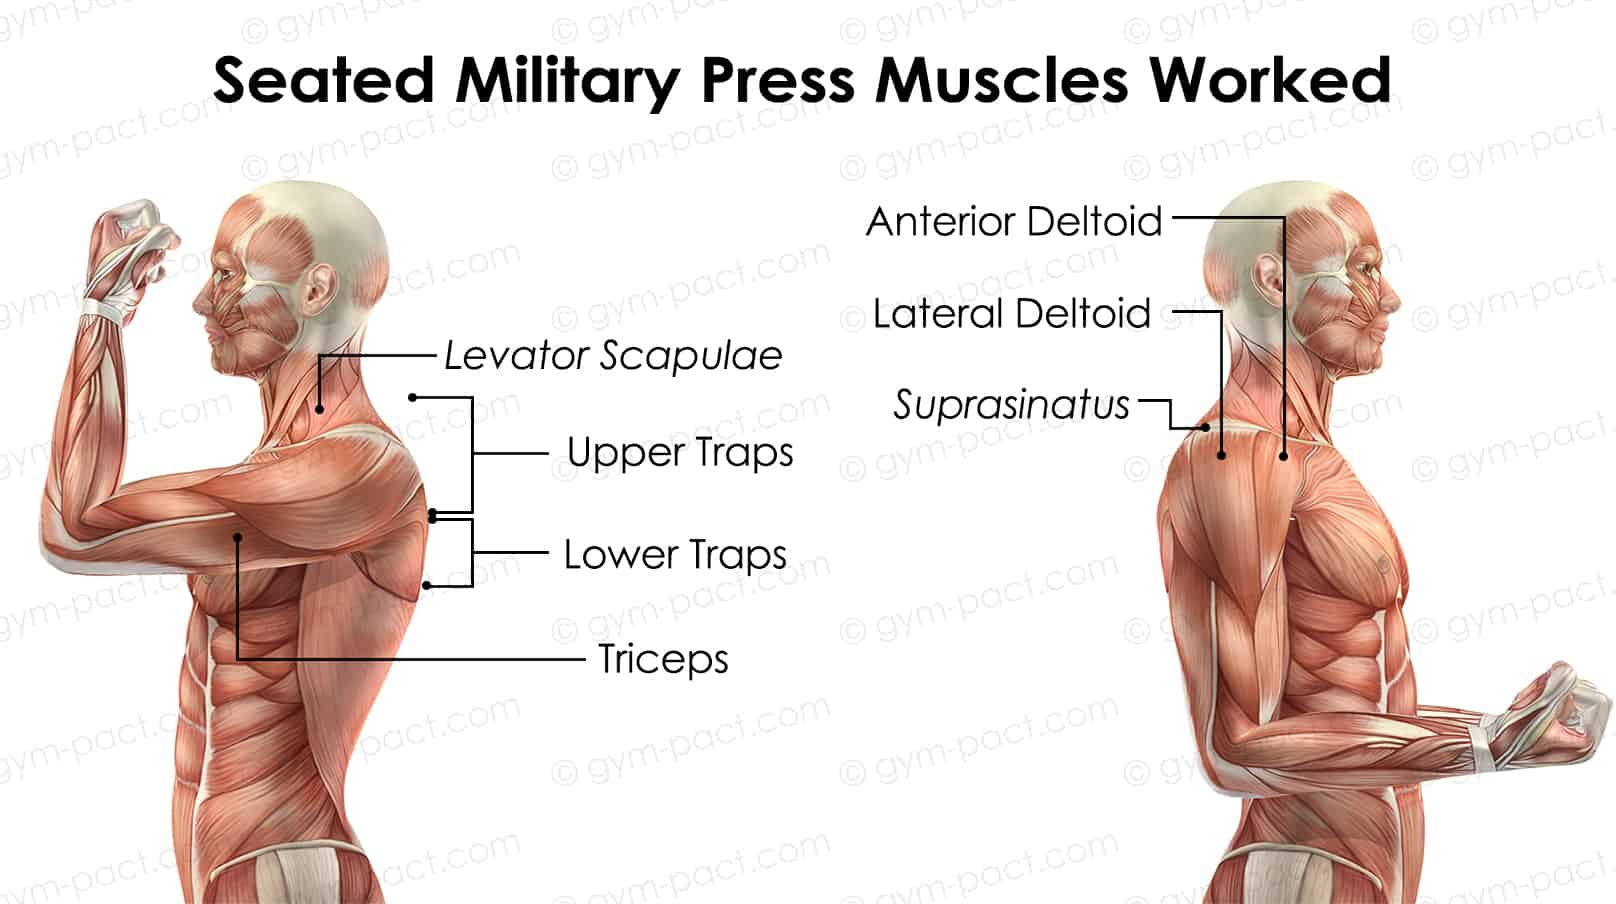 Seated Military Press Muscles Worked